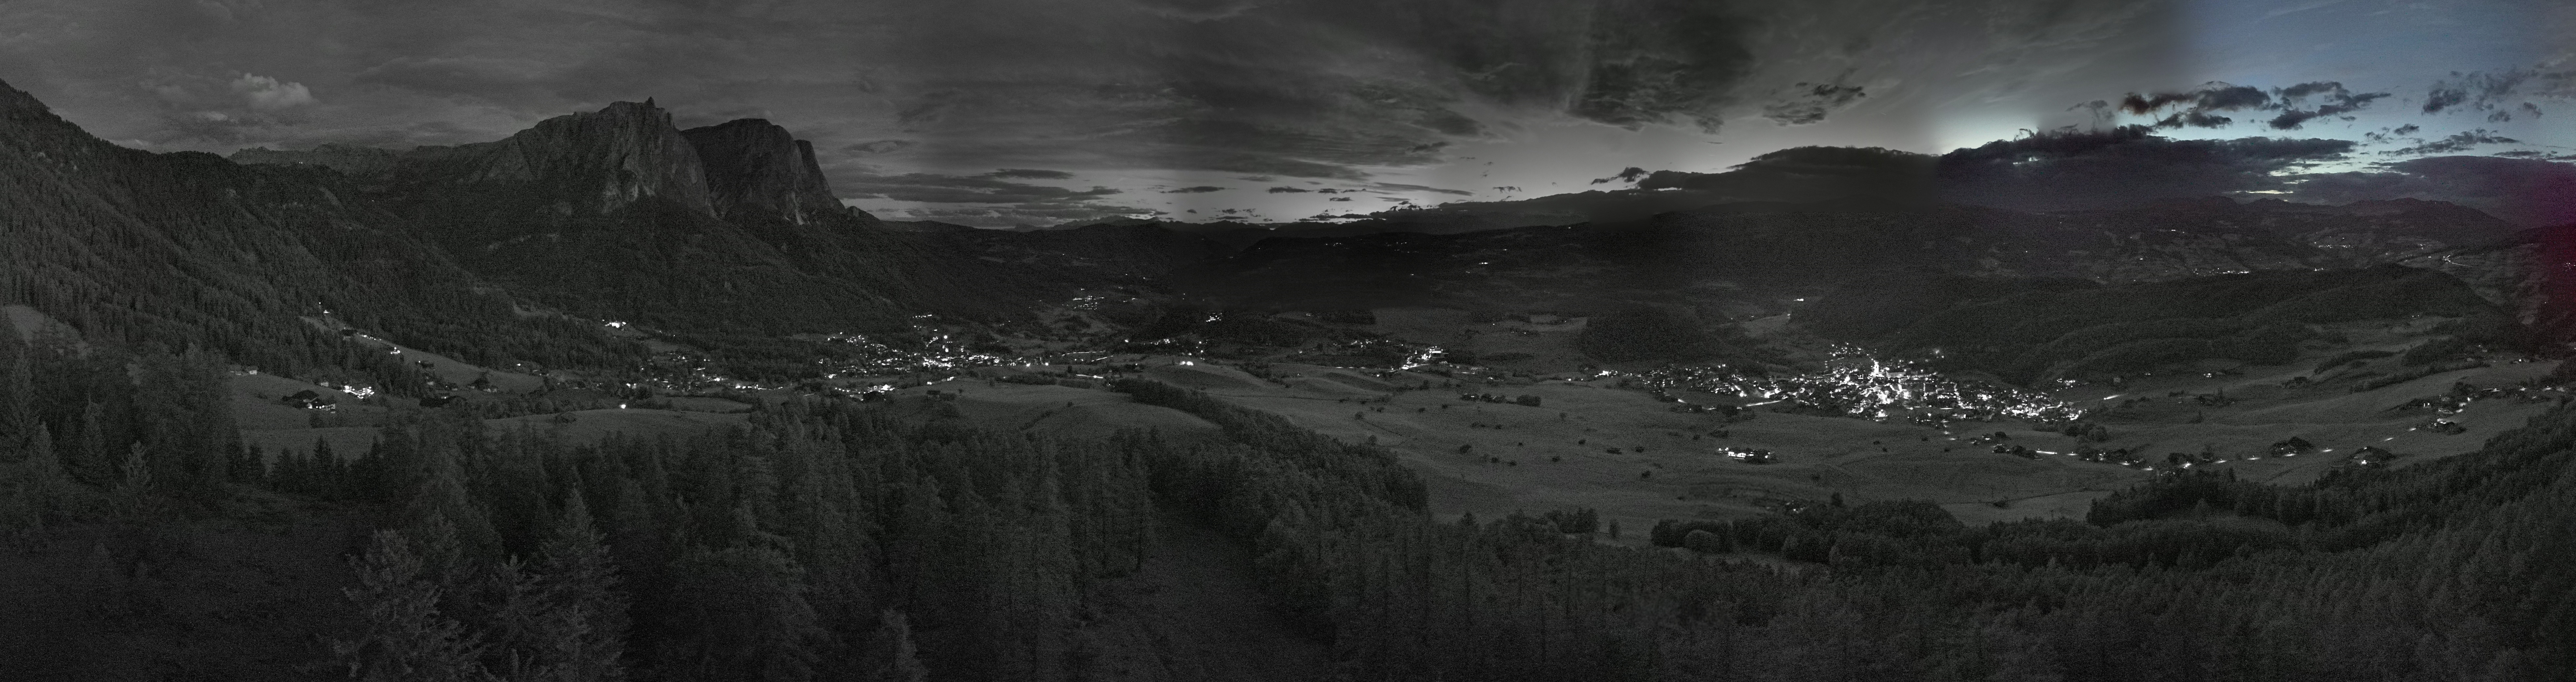 Webcam Panoramica Castelrotto - Alpe di Siusi, Dolomiti Superski